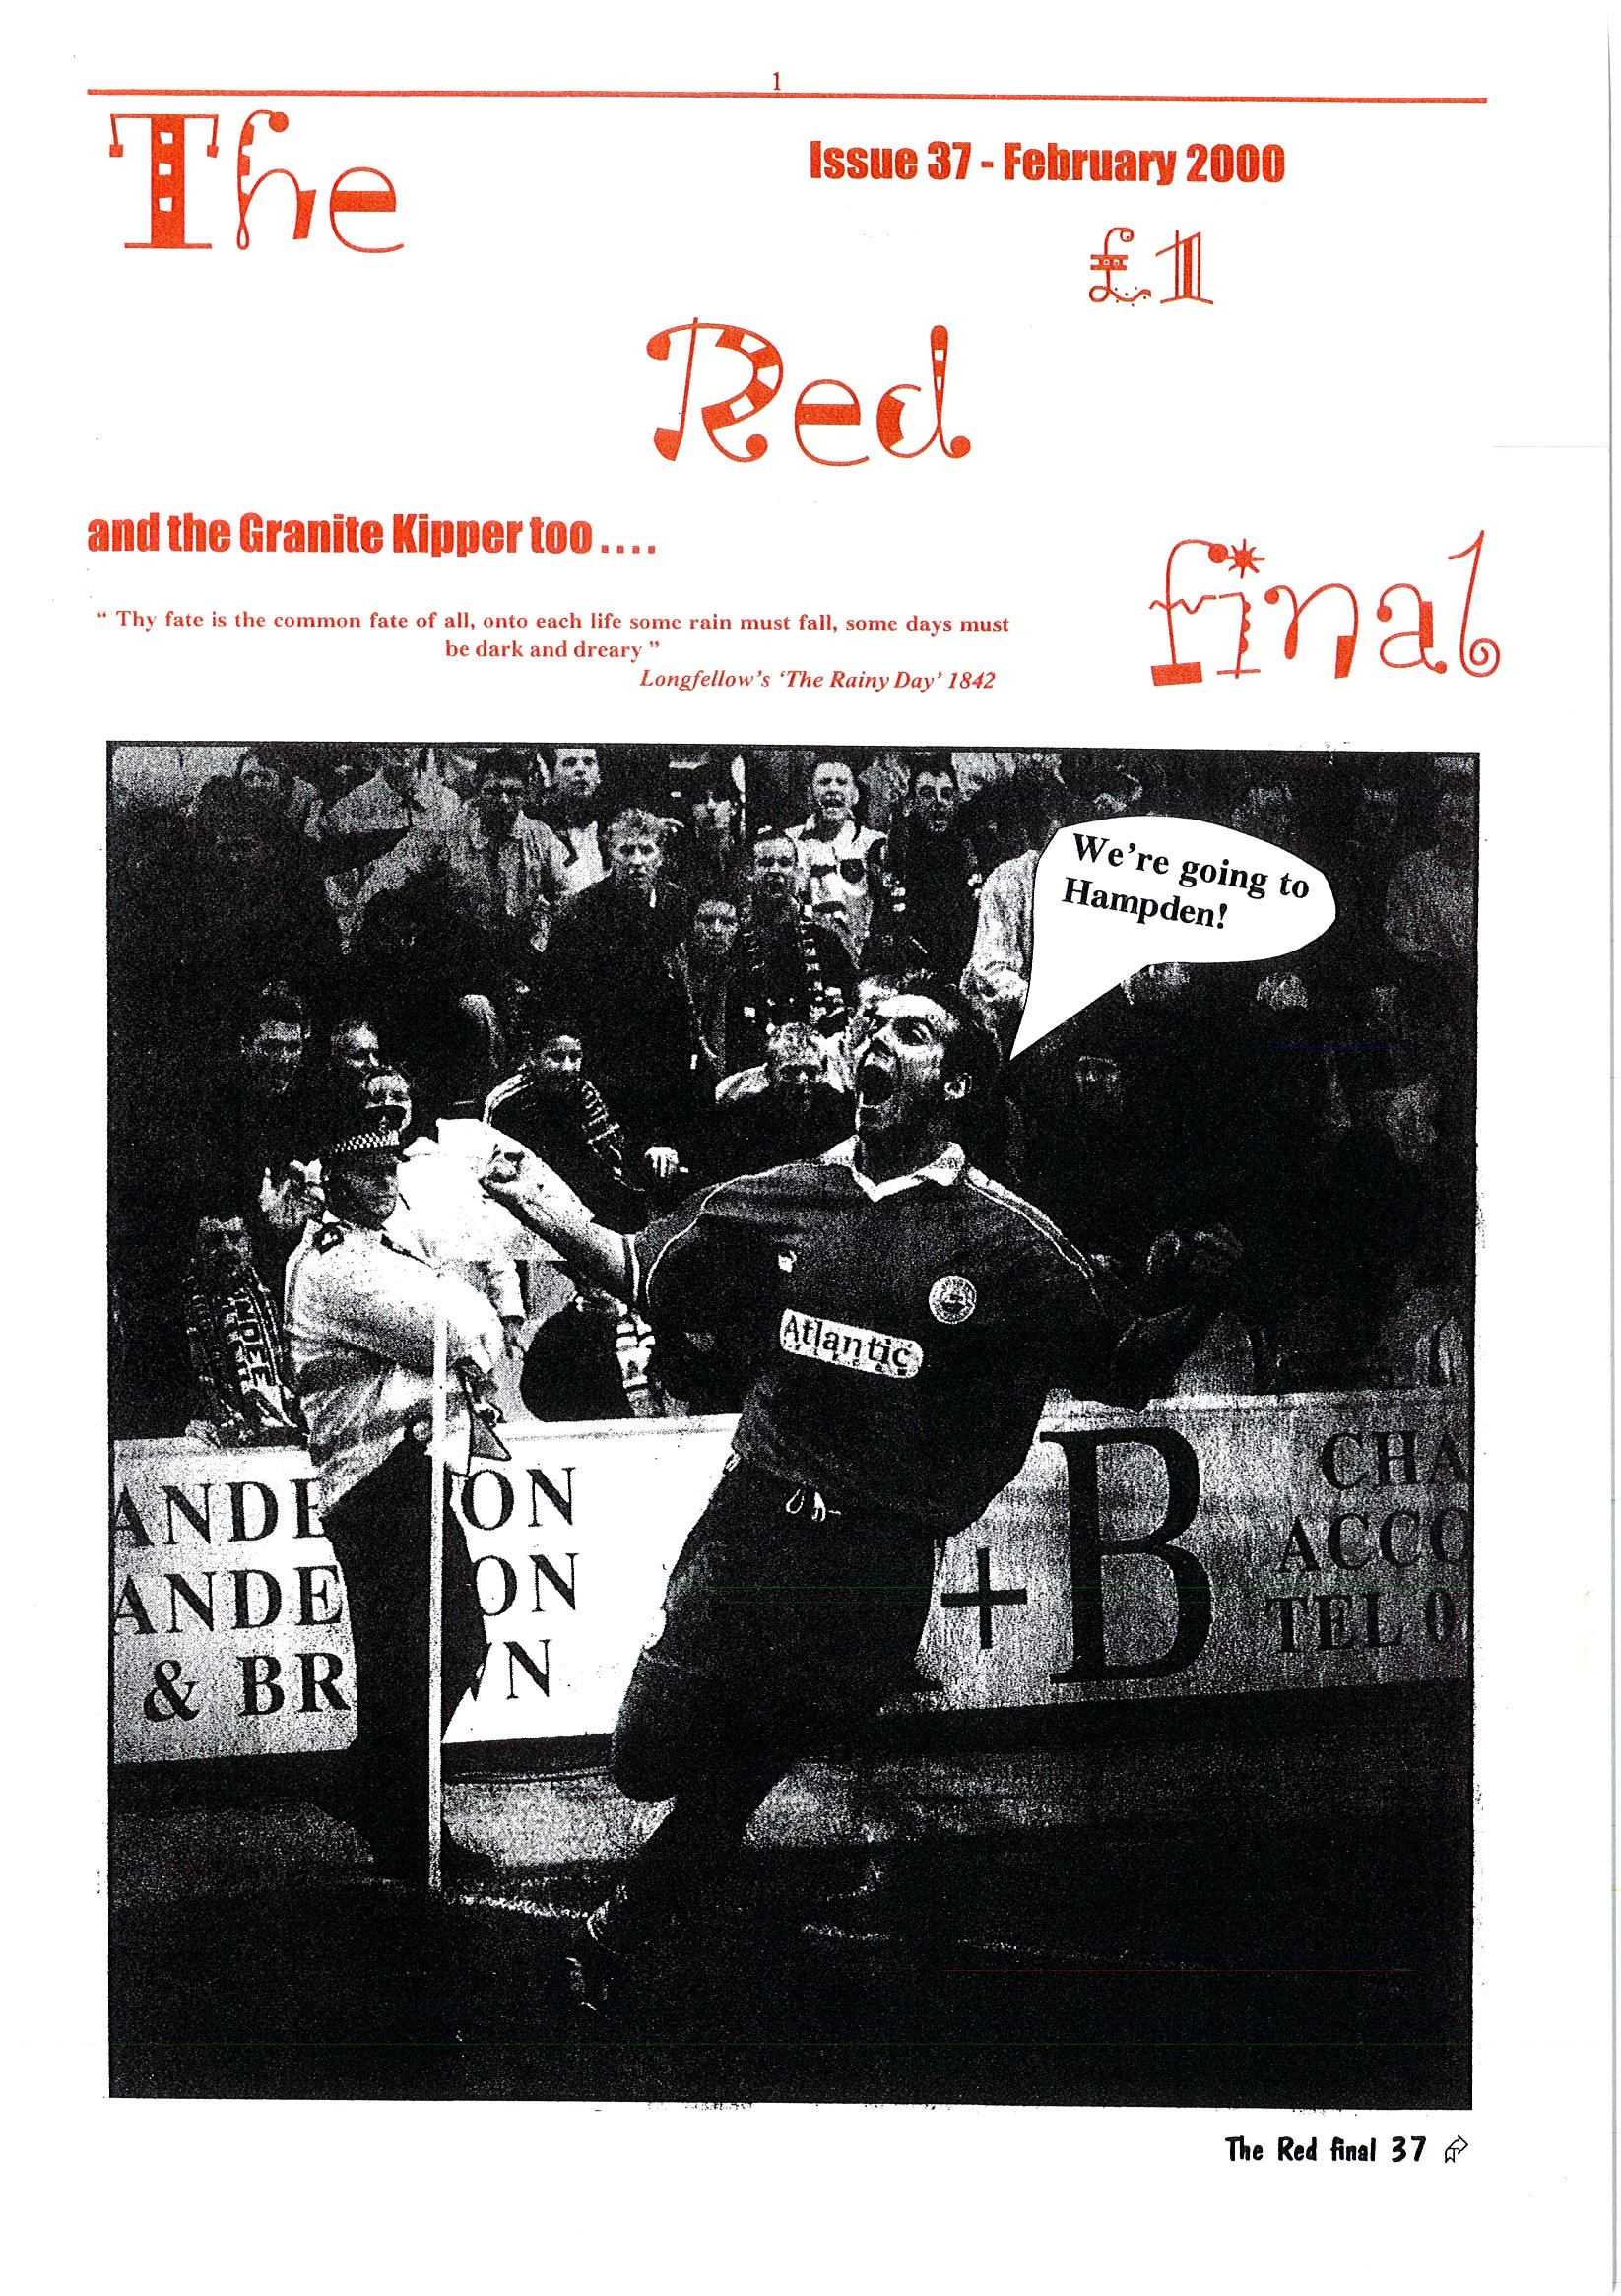 The Red Final, Issue 37